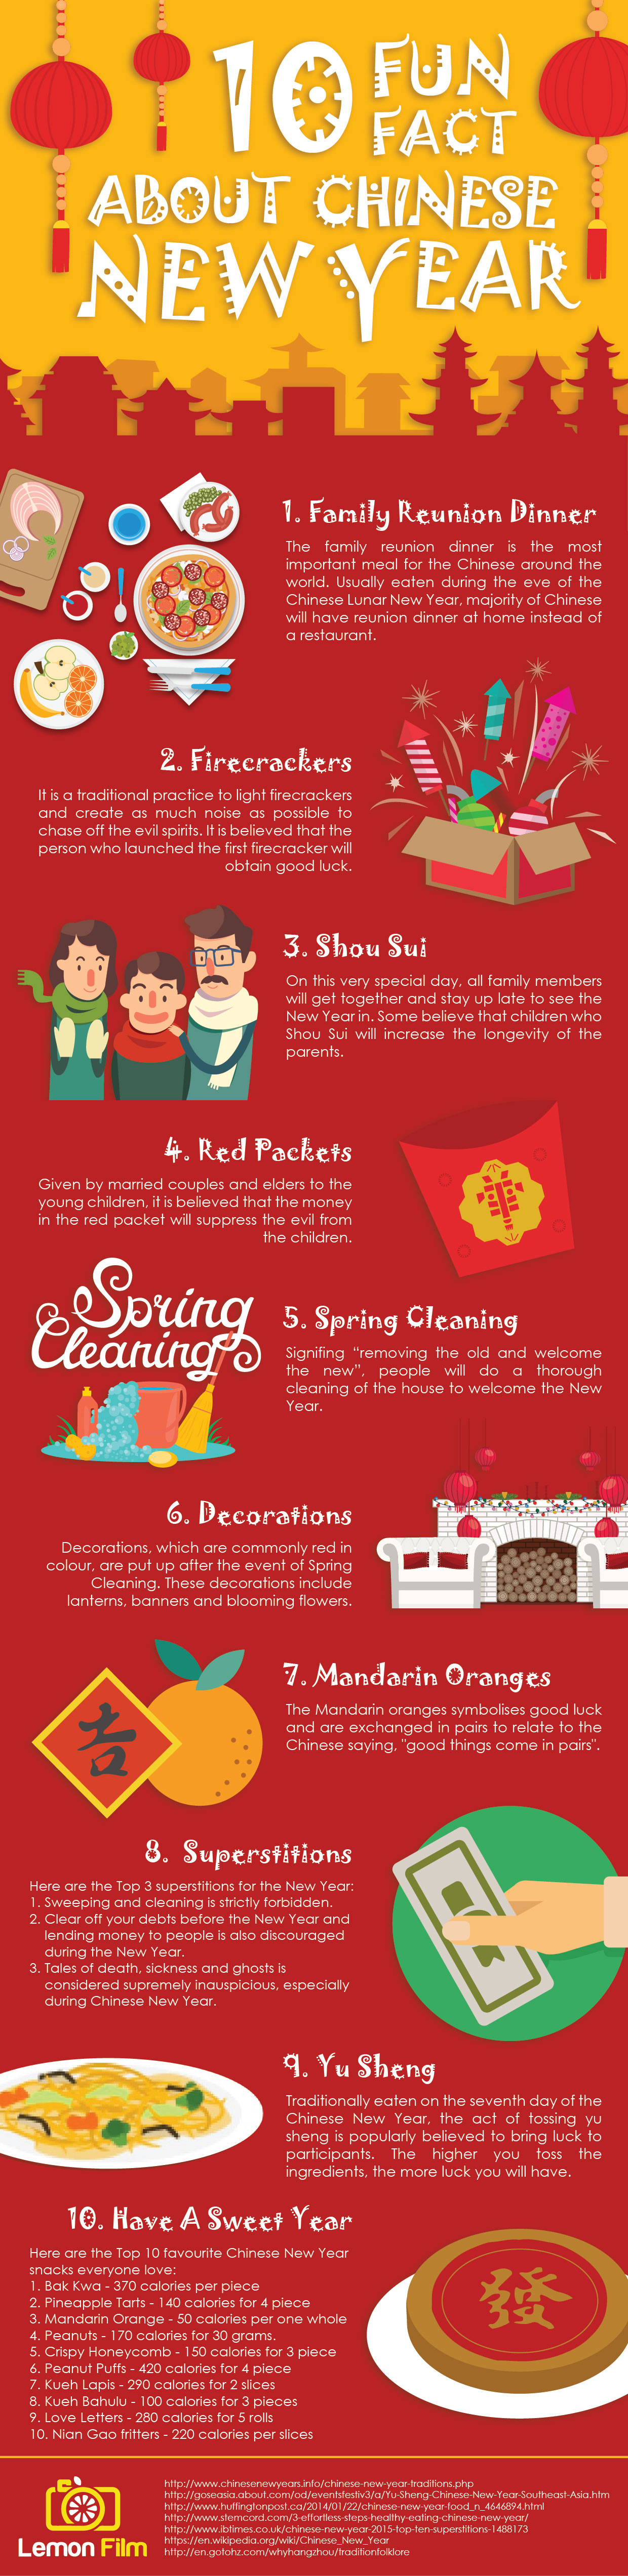 10 Fun Facts About Chinese New Year (Infographic) - Lemon Film